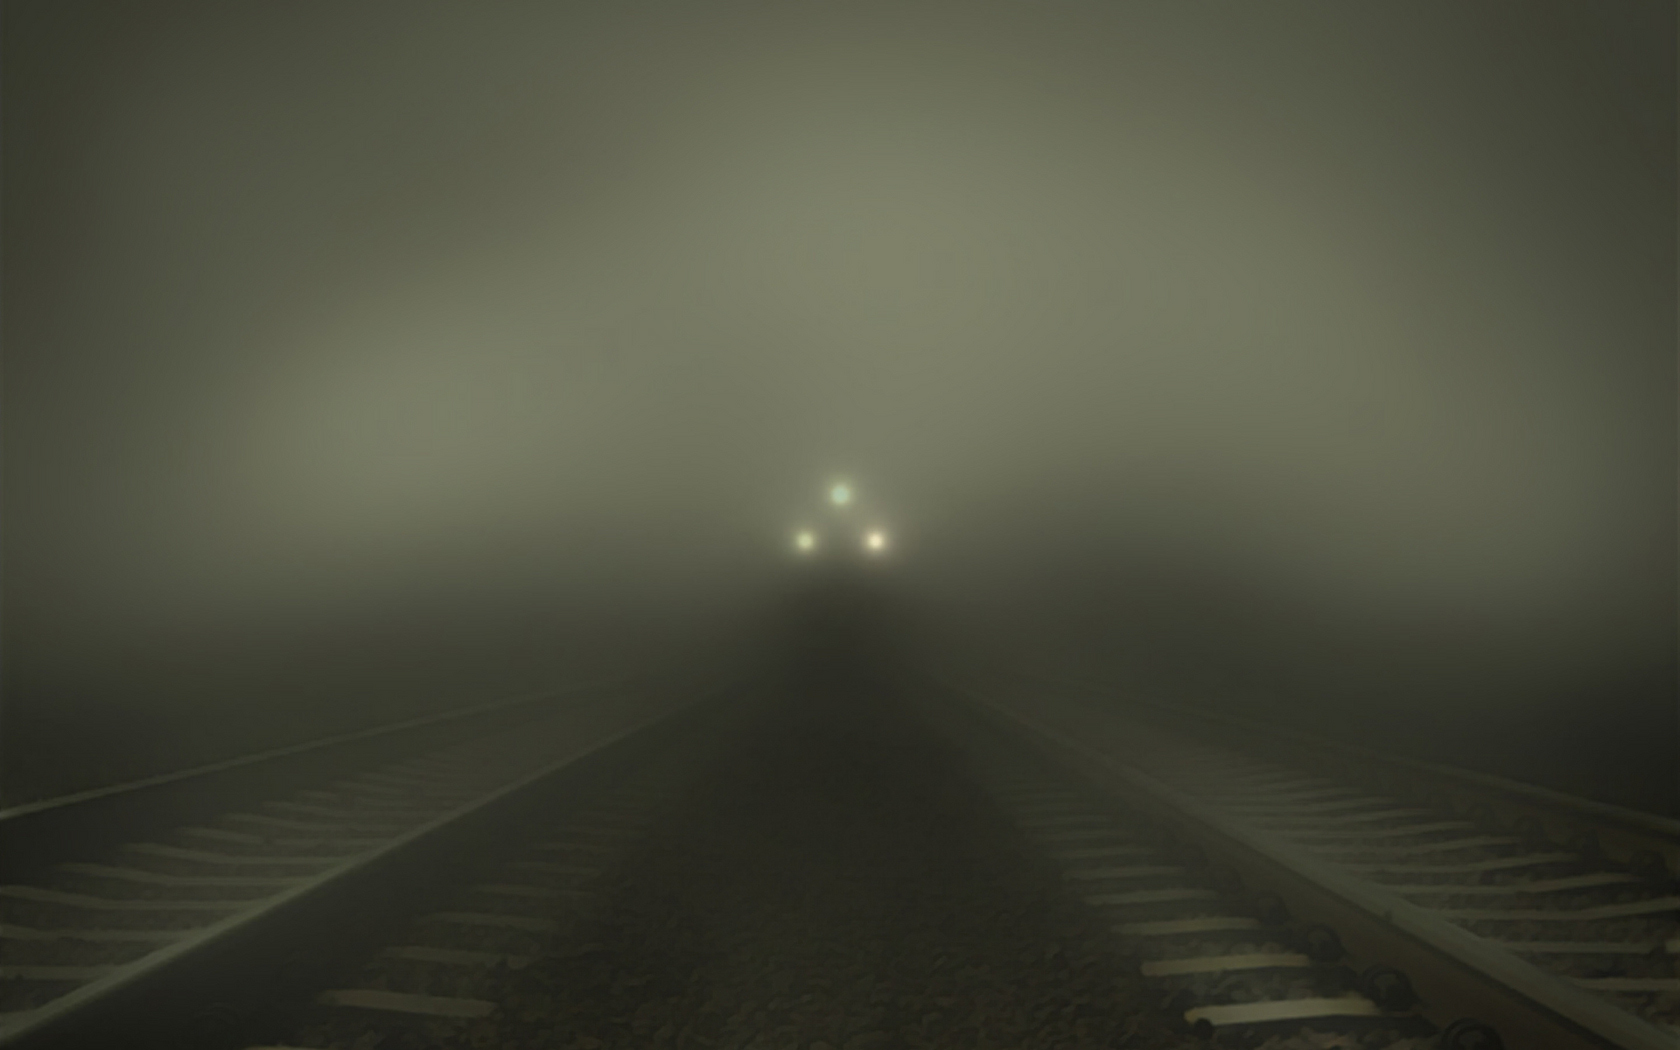 situation-train-light-rail-railway-fog-mist-evening-night-trip-putishestviya-stones-dark.jpg